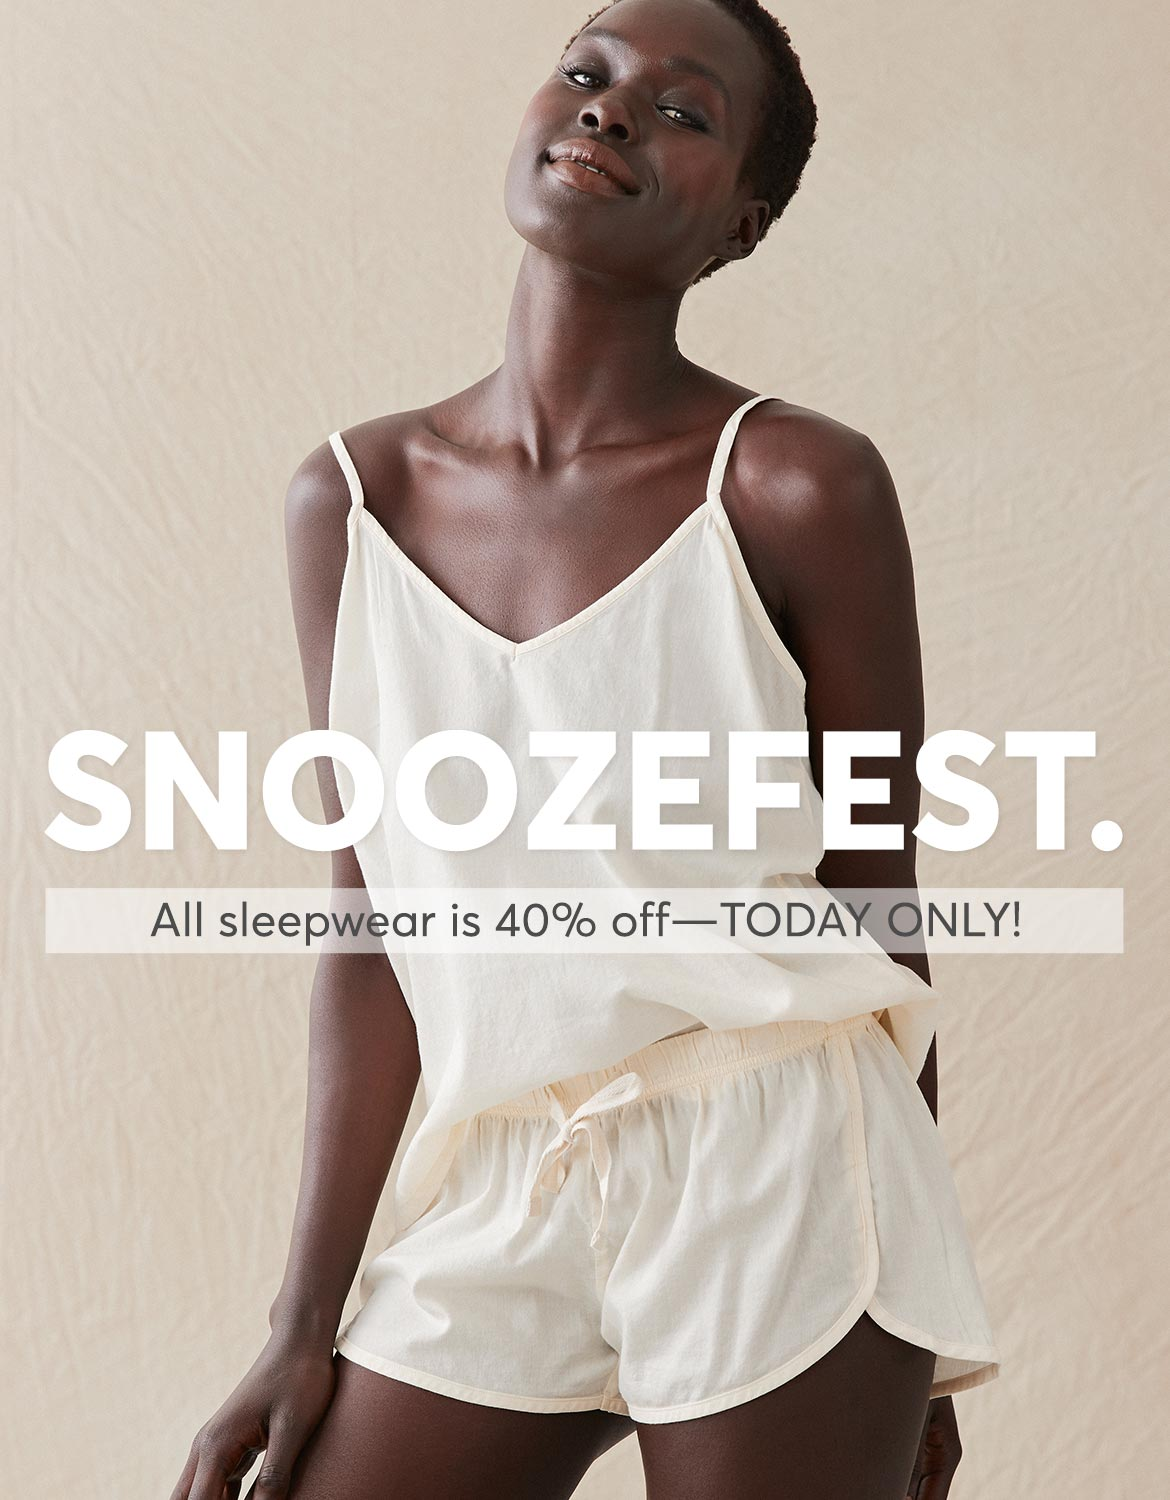 Snoozefest. All sleepwear is 40% off—TODAY ONLY!